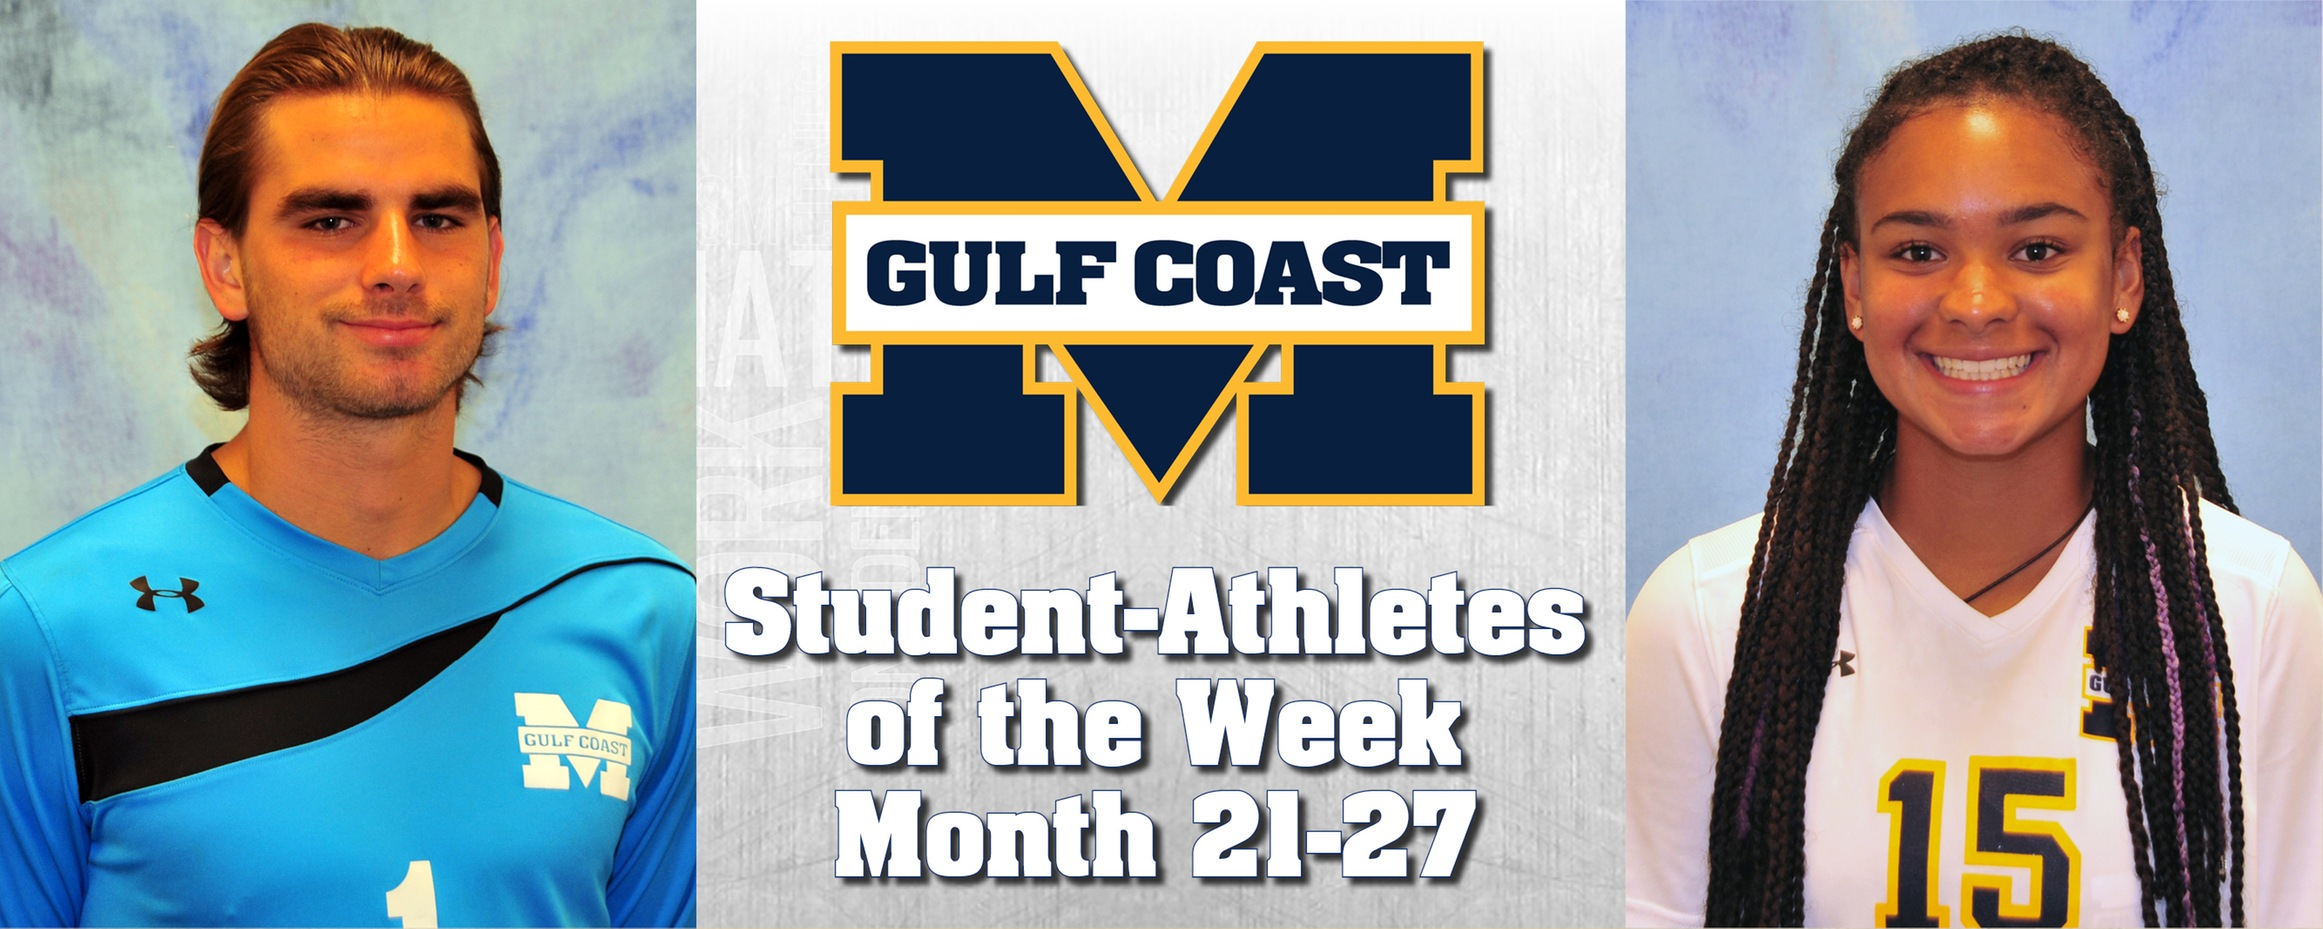 Betz, Beatty named MGCCC Student-Athletes of the Week